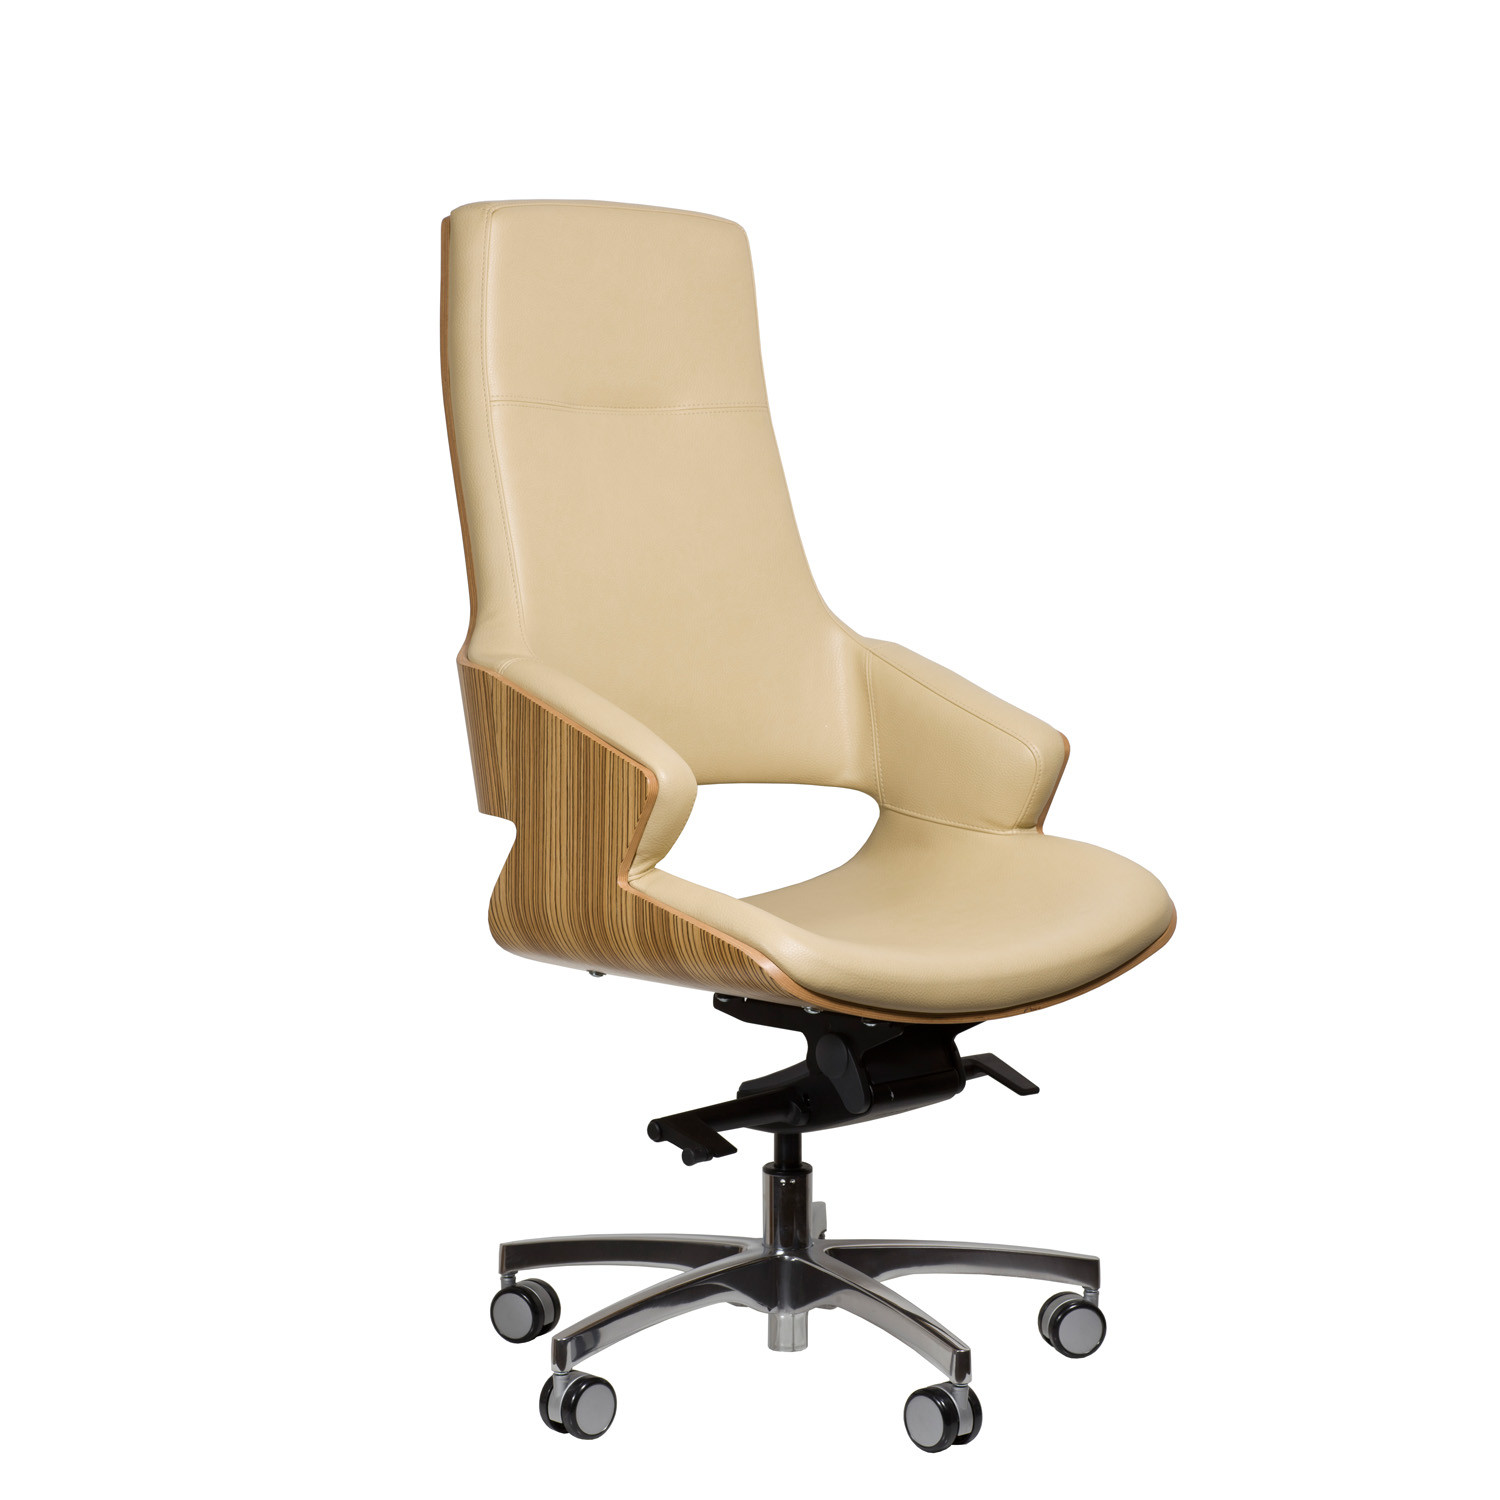 Stanley Executive Meeting Chair